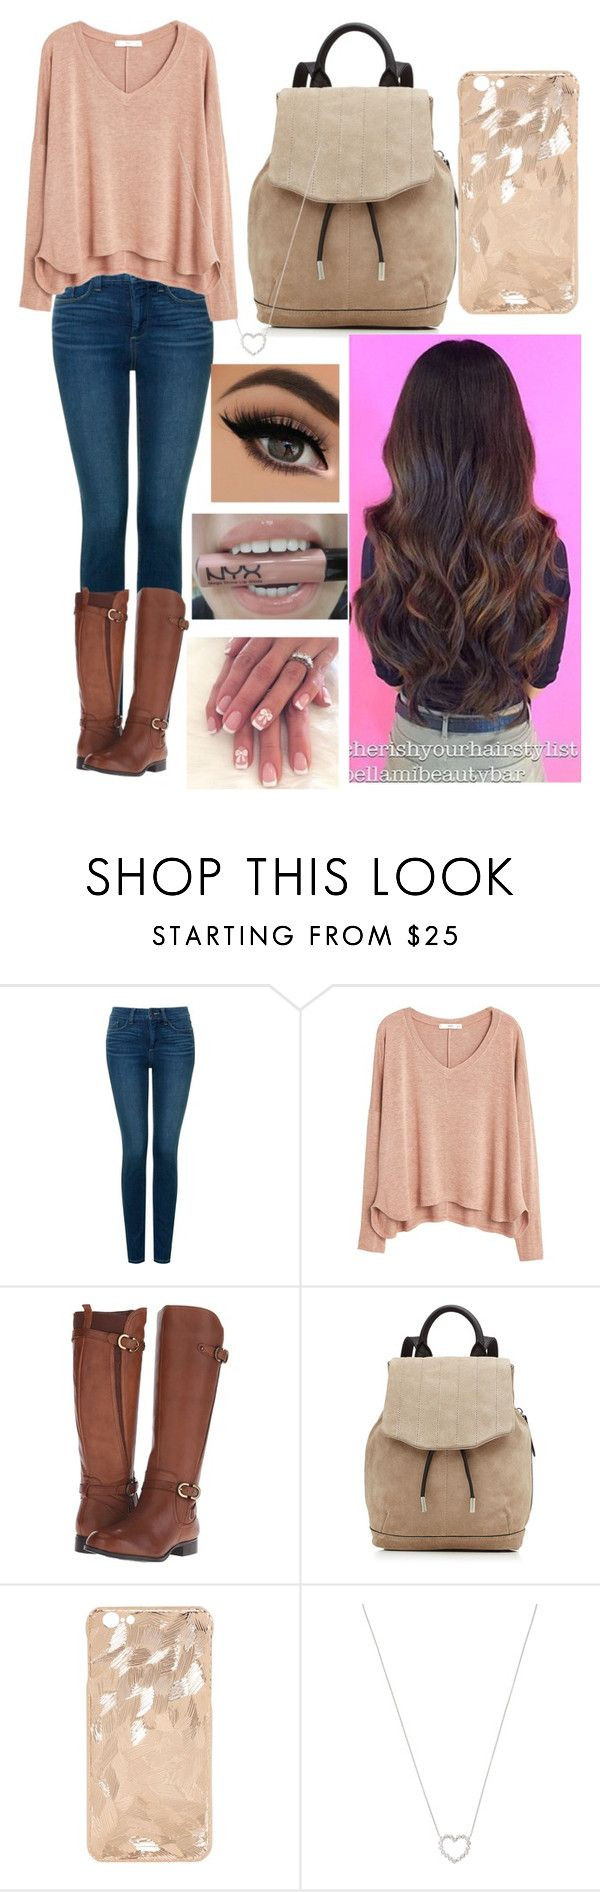 """Tori Vega (from Victorious) inspired outfit"" by x1dlover4everx ❤ liked on Polyvore featuring NYDJ, MANGO, Naturalizer, rag & bone, Tiffany & Co. and NYX"